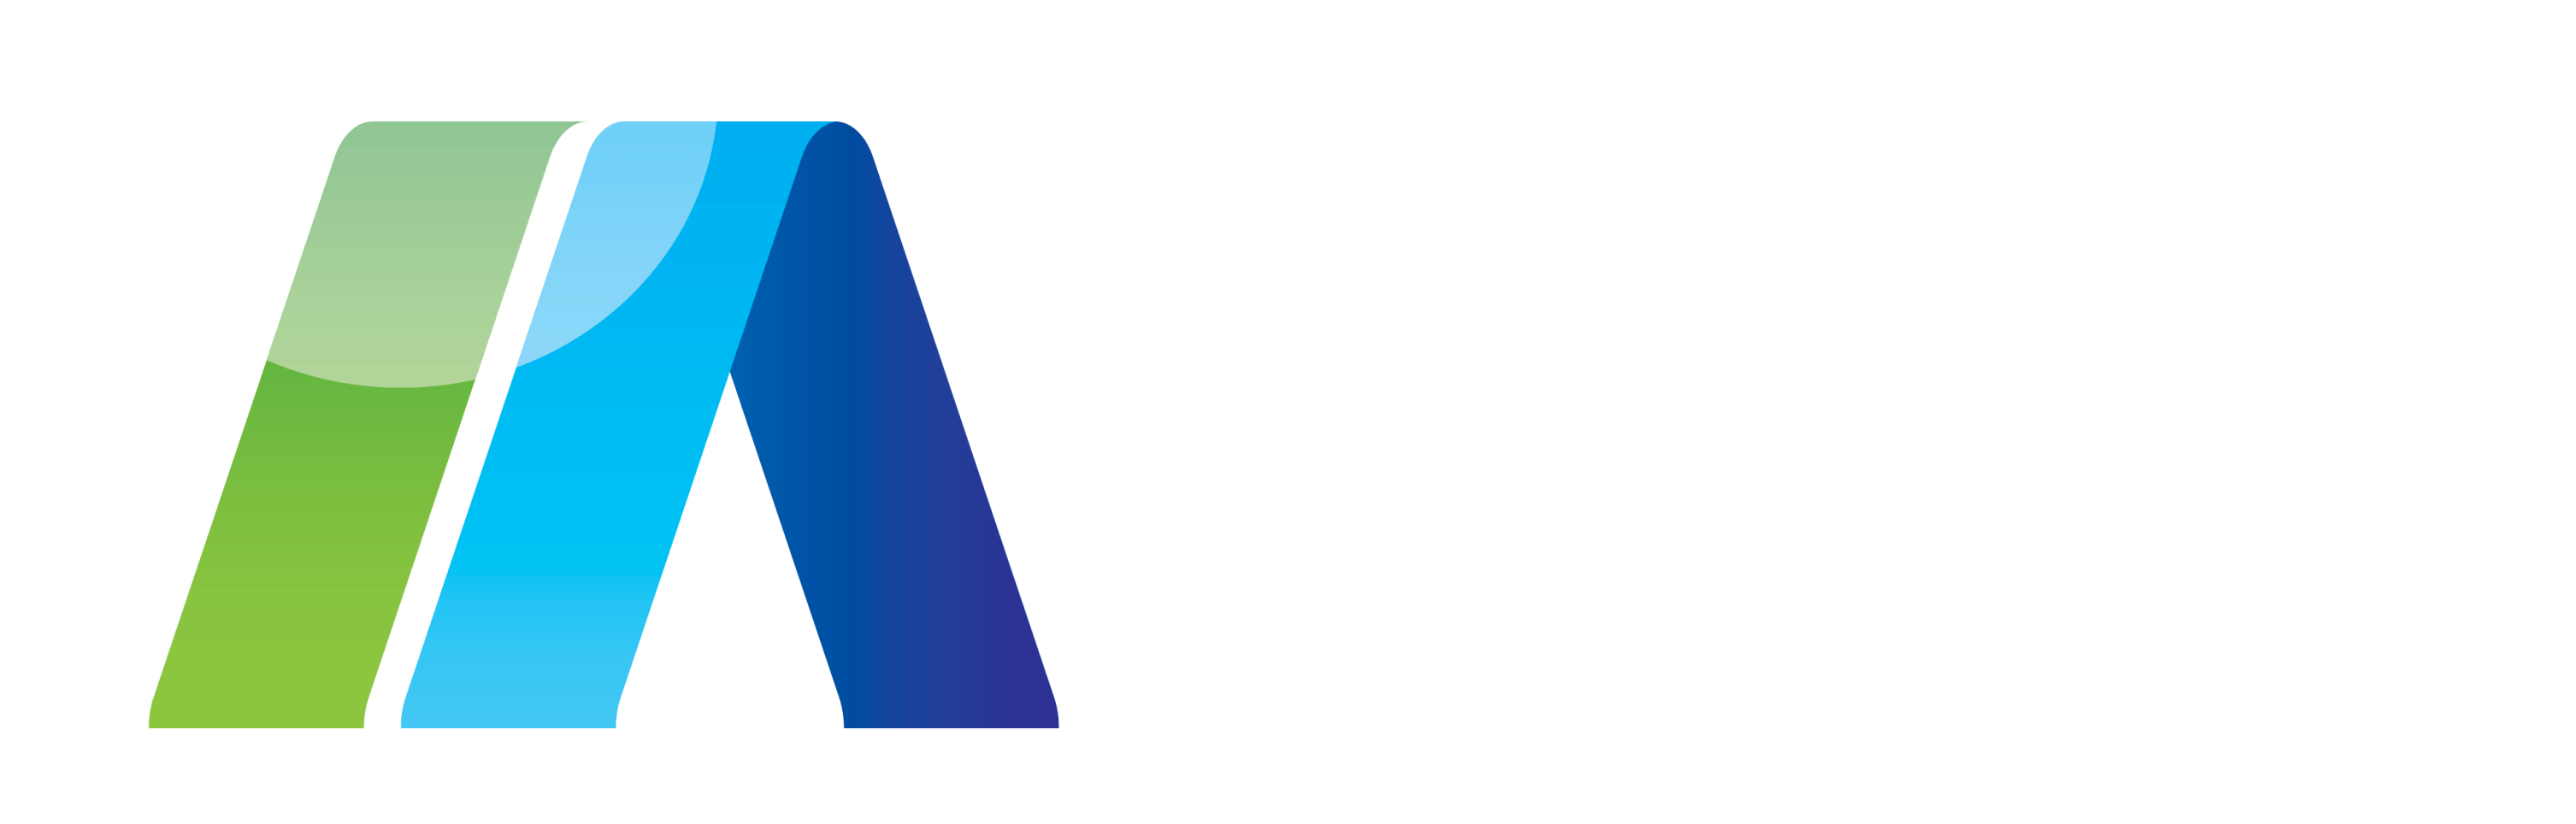 2016 I4A GROUP LOGO WHITE TEXT